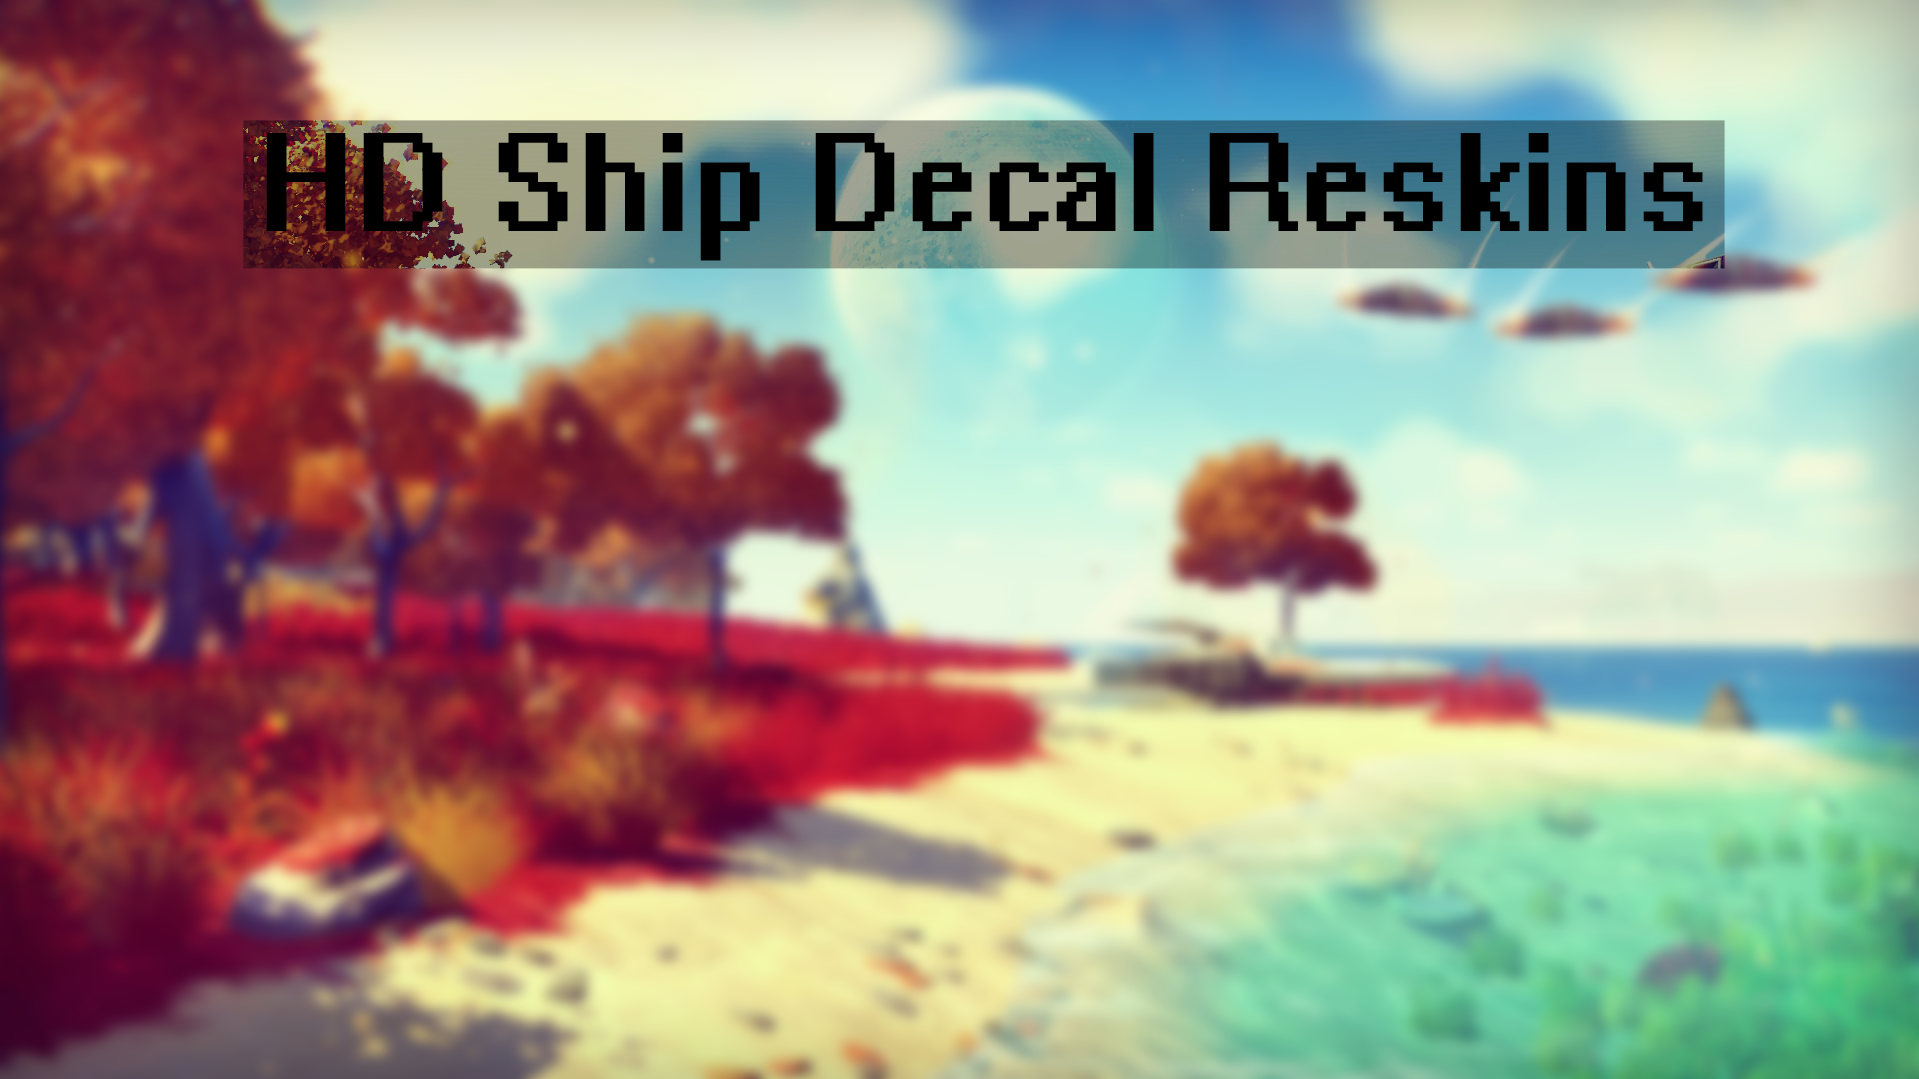 HD Ship Decal Reskins